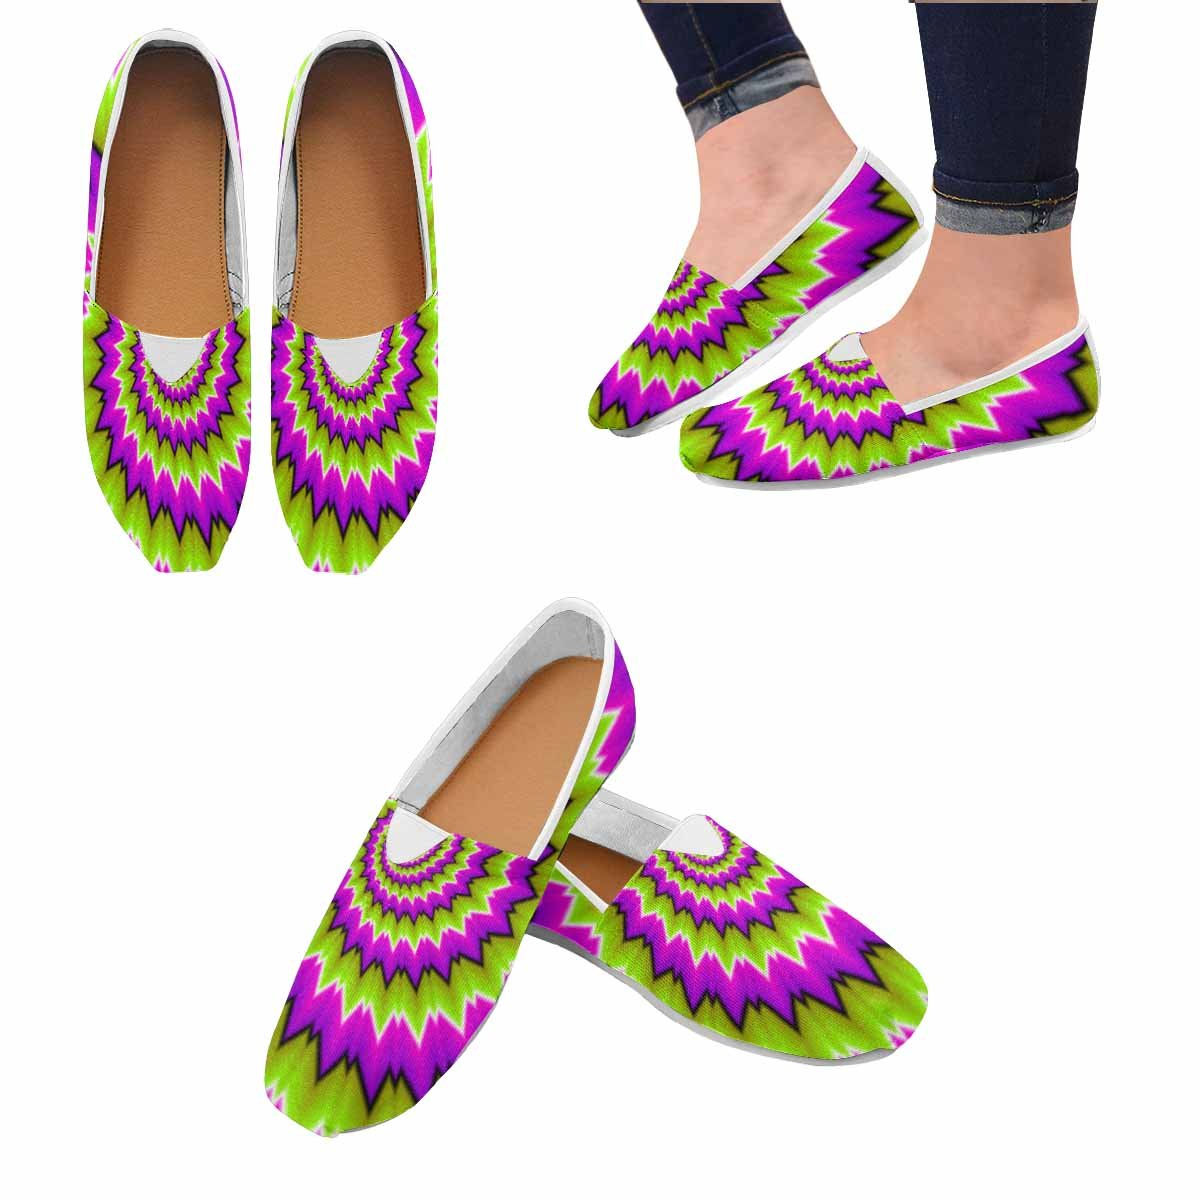 InterestPrint Womens Lightweight Casual Walking Athletic Shoes Slip-on Loafer